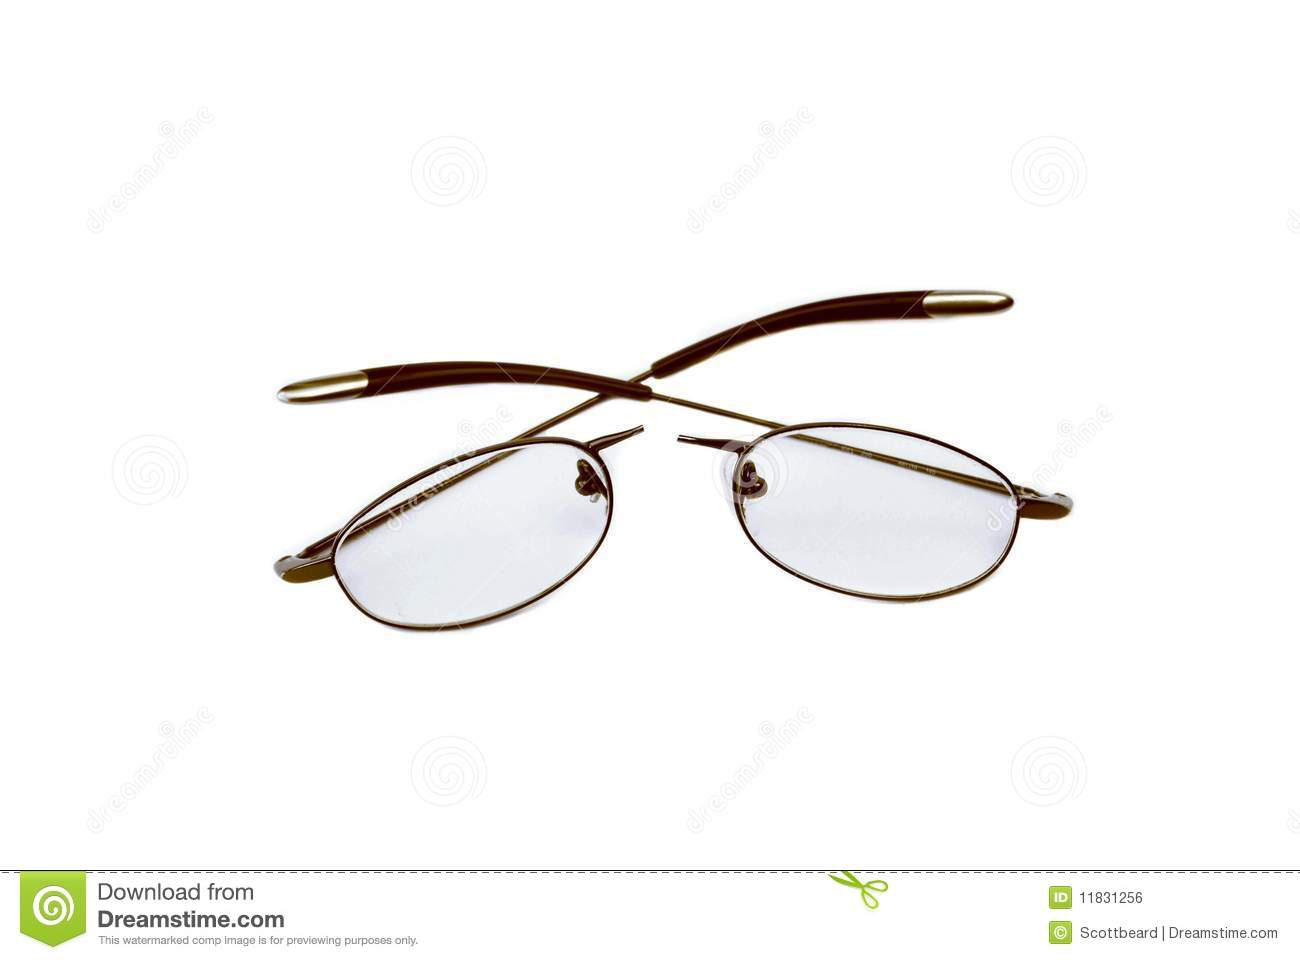 how to fix a broken pair of glasses